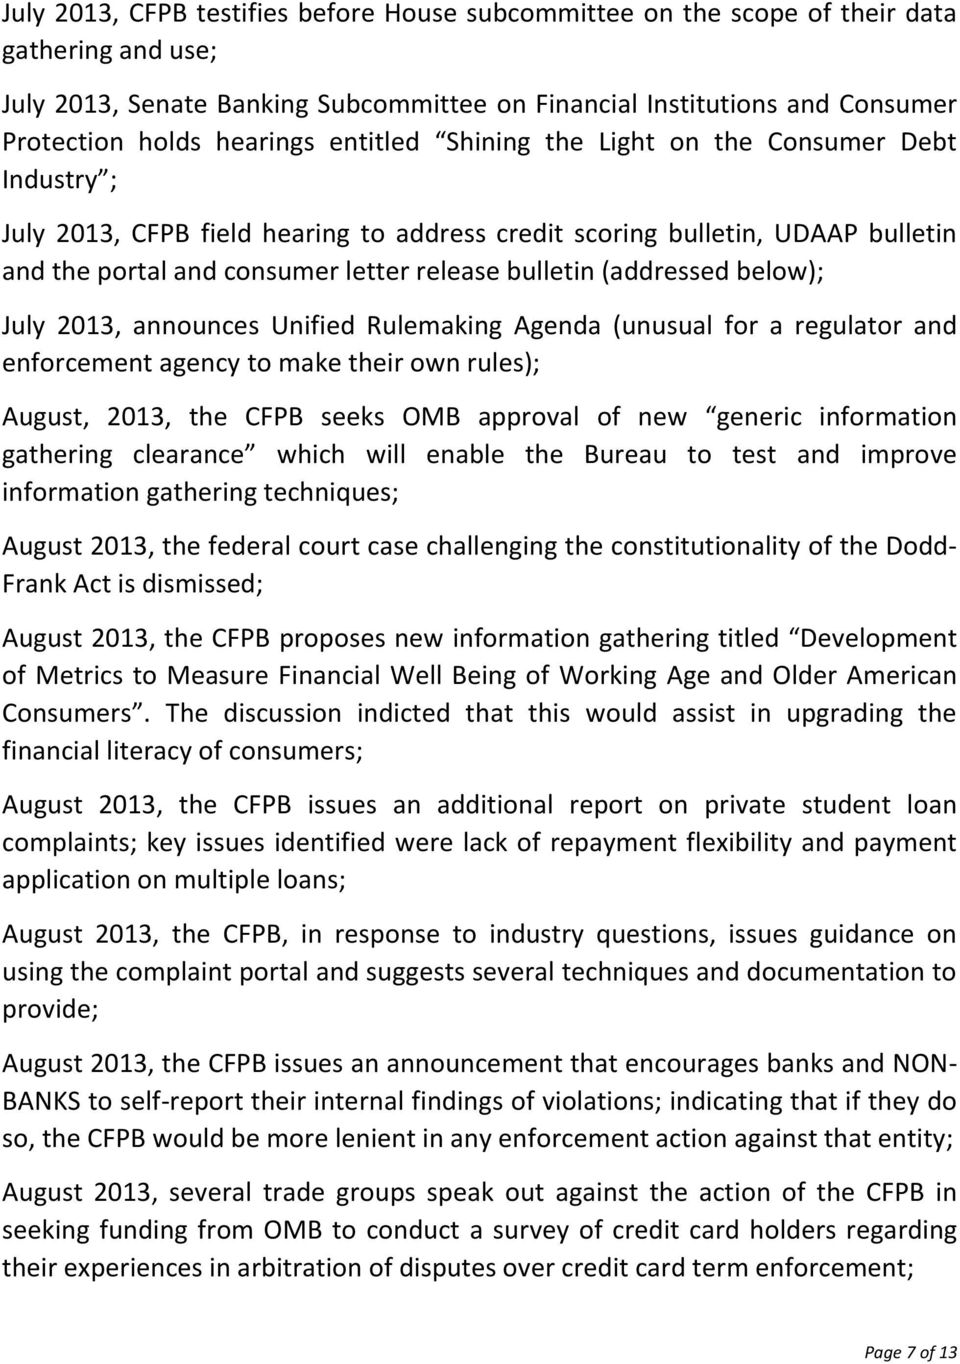 bulletin (addressed below); July 2013, announces Unified Rulemaking Agenda (unusual for a regulator and enforcement agency to make their own rules); August, 2013, the CFPB seeks OMB approval of new